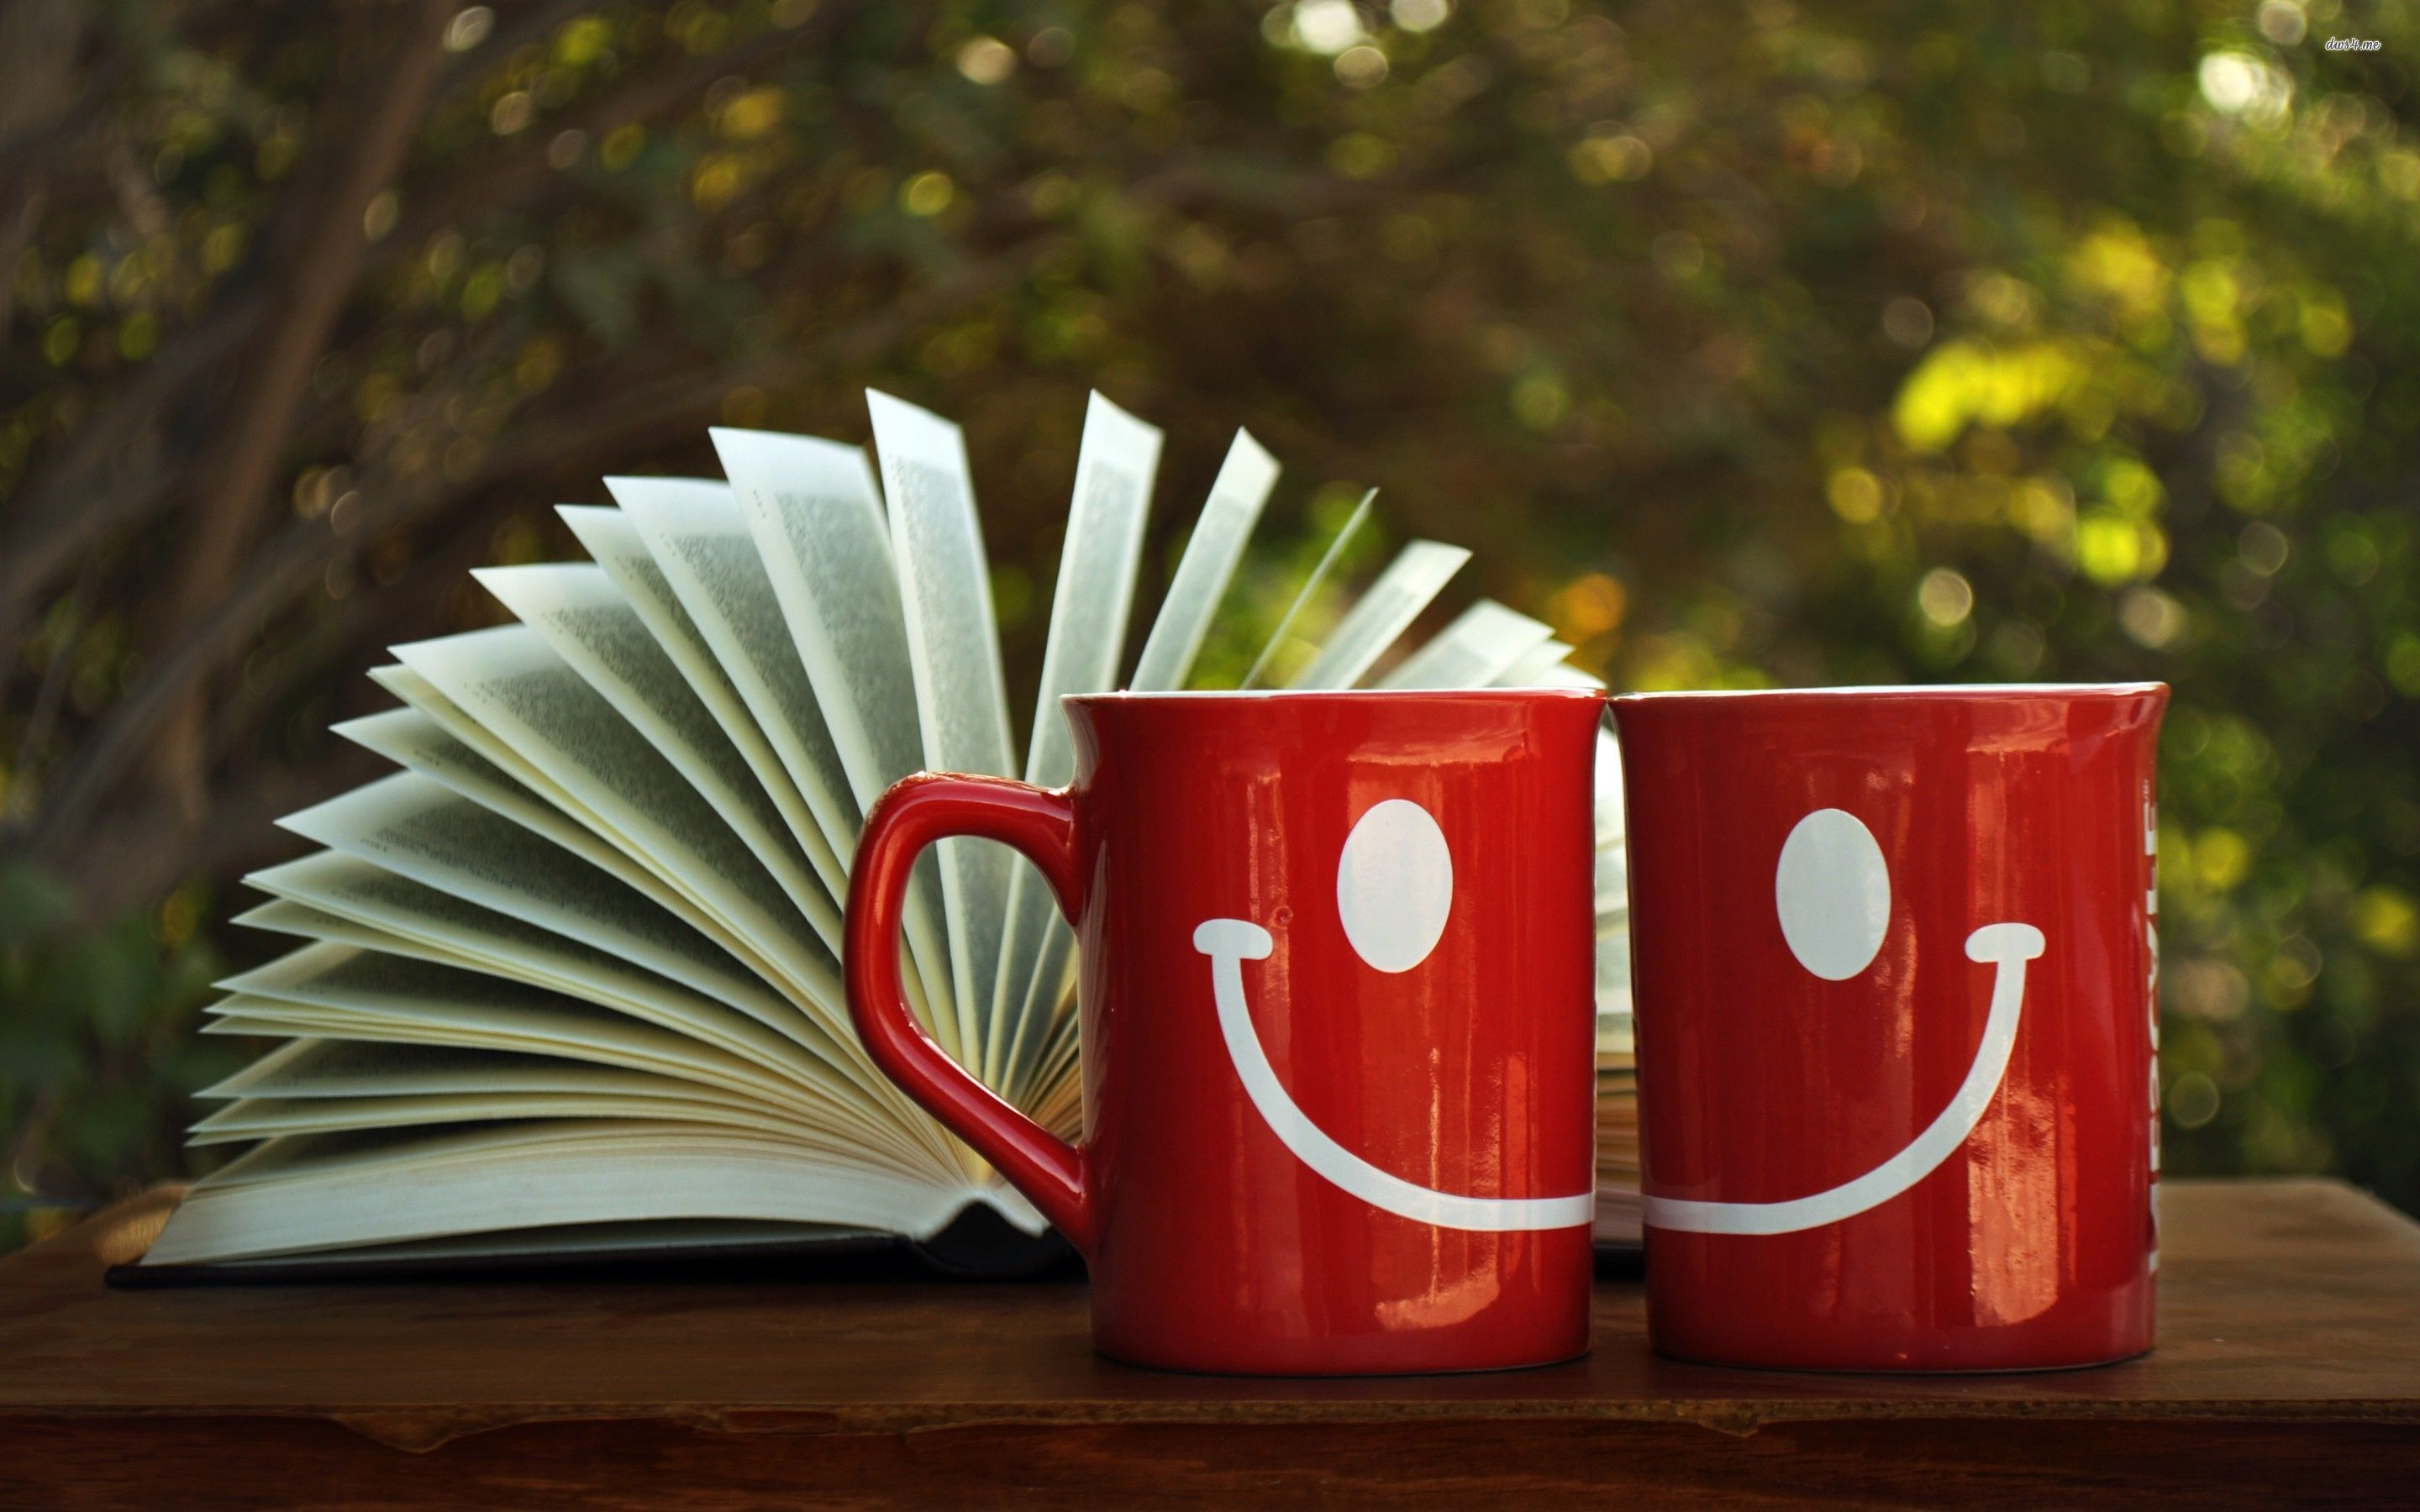 happy-mugs-and-an-open-book-cup-smile-photography-2880x1800-wallpaper170633